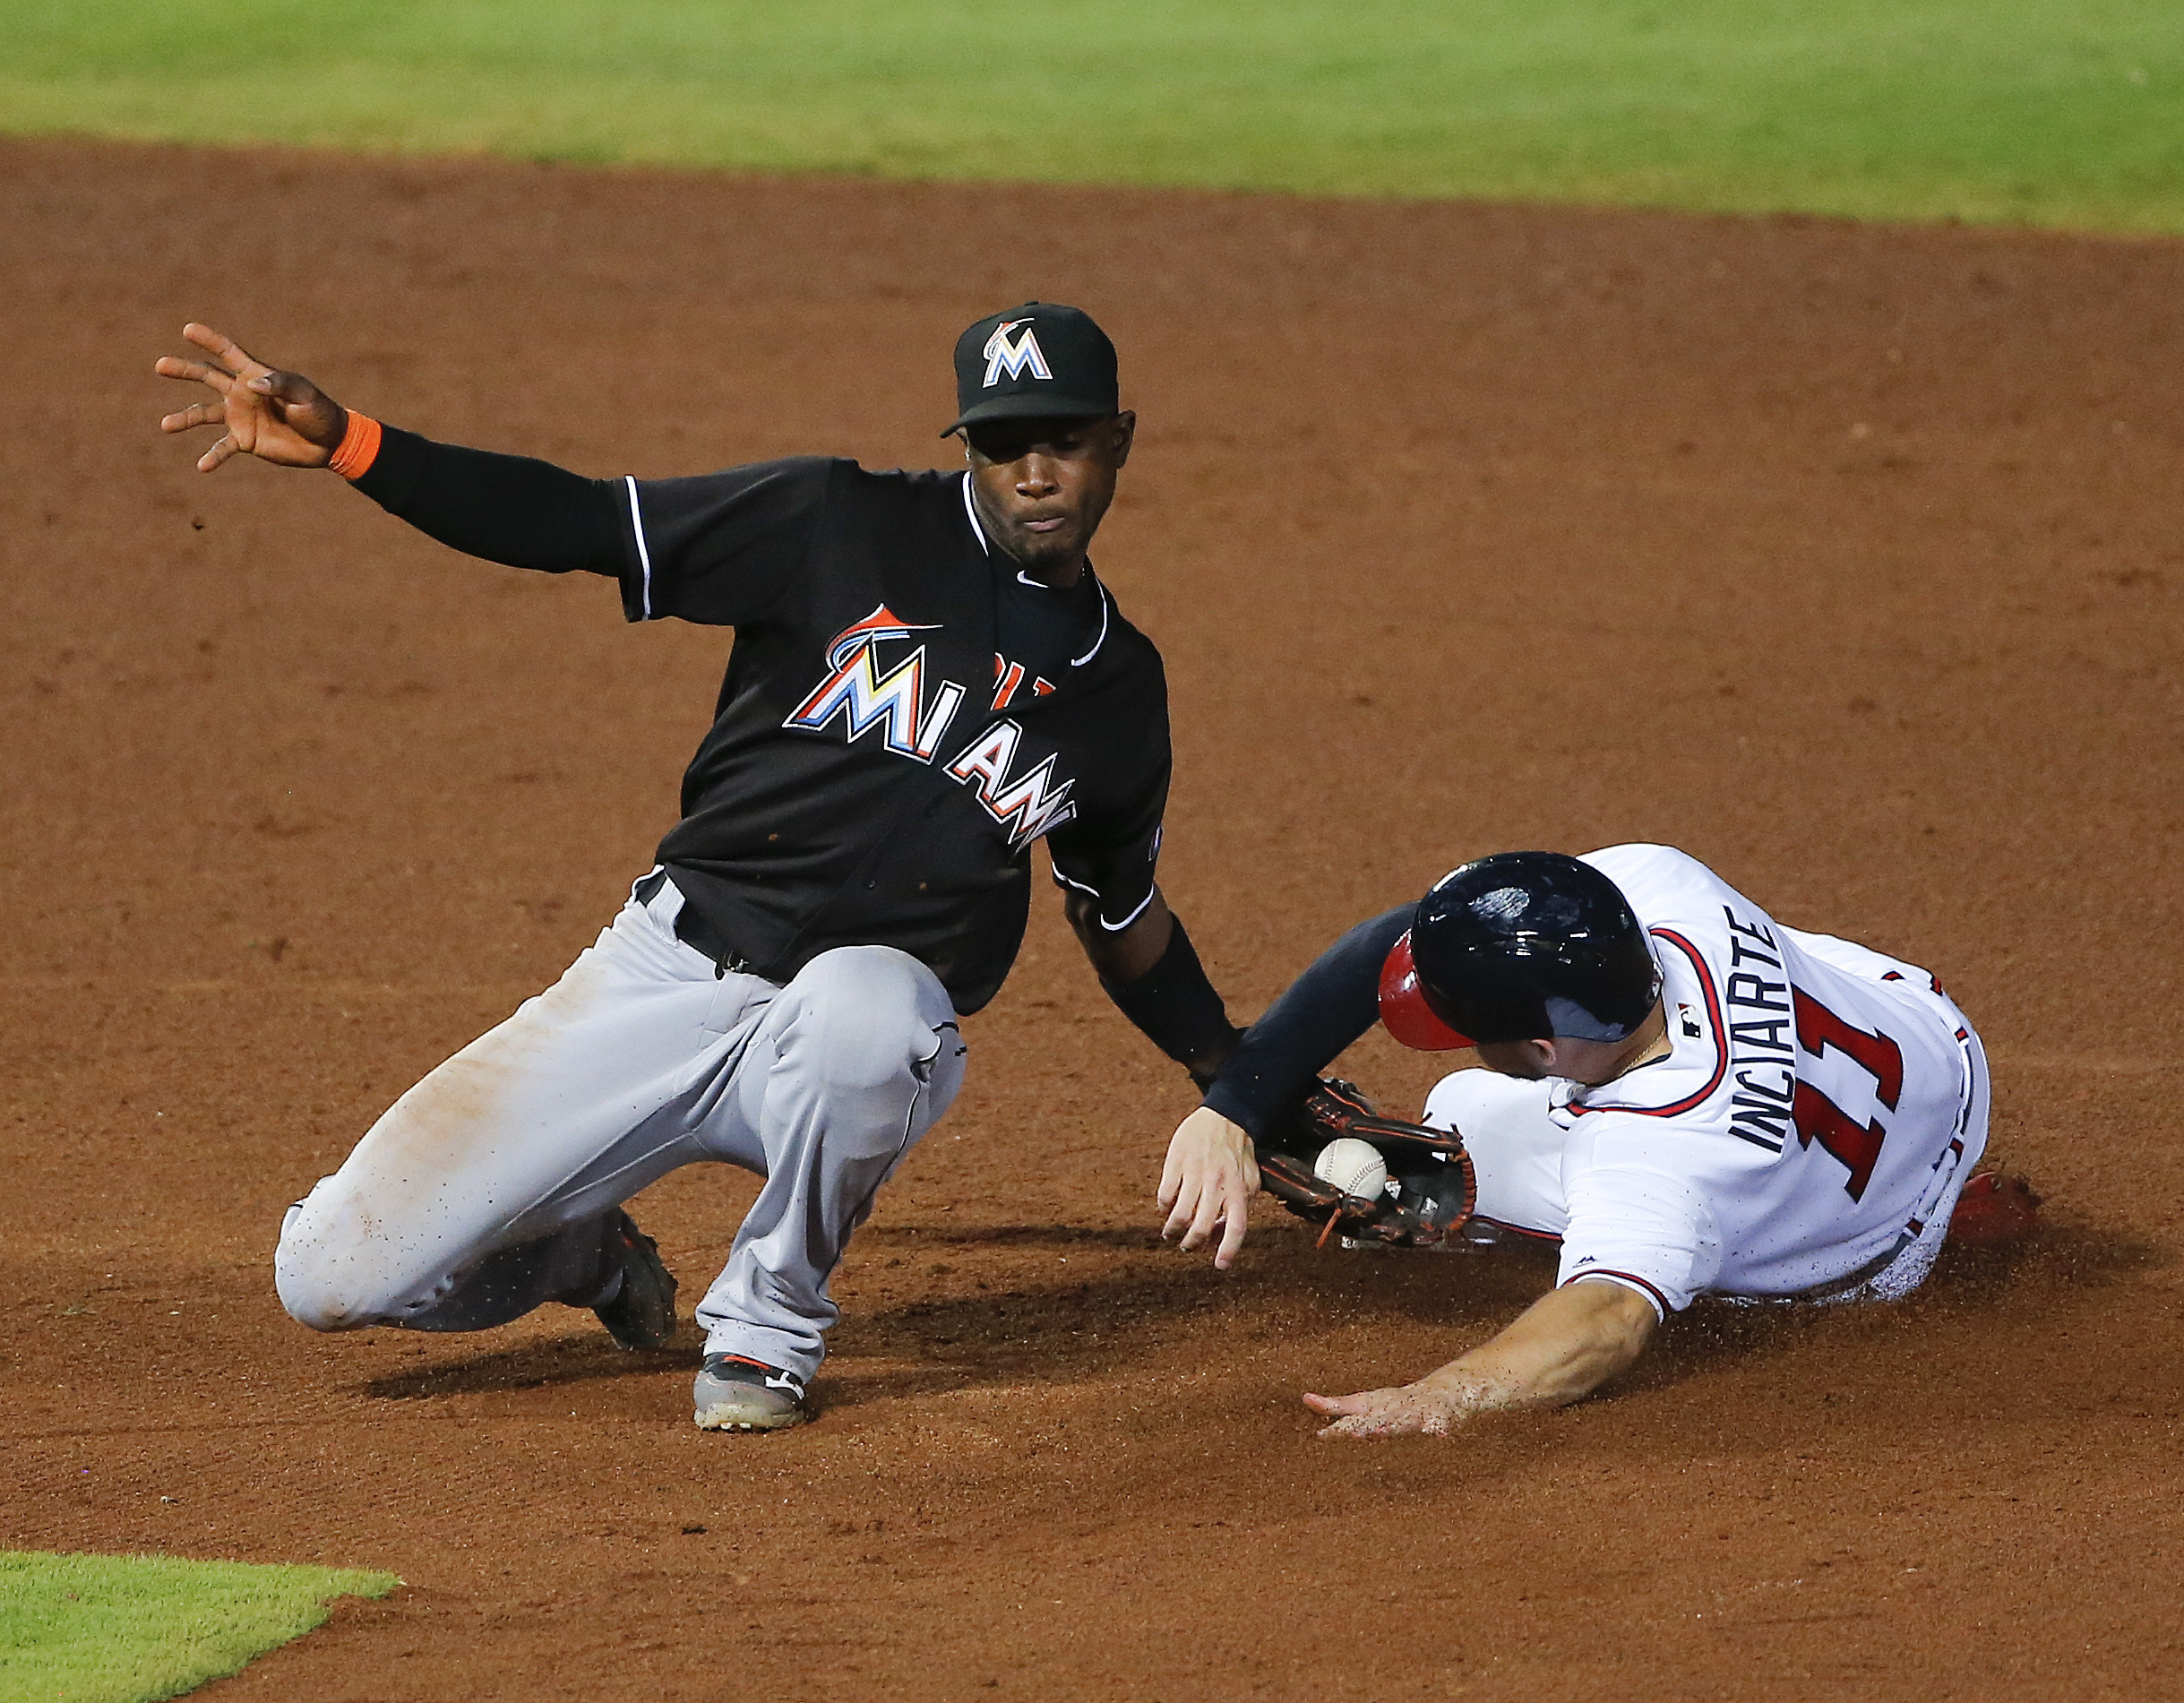 Atlanta Braves' Ender Inciarte (11)steals second base as Miami Marlins shortstop Adeiny Hechavarria, left, applies the late tag in the fifth inning of a baseball game Friday, July 1, 2016, in Atlanta. (AP Photo/John Bazemore)